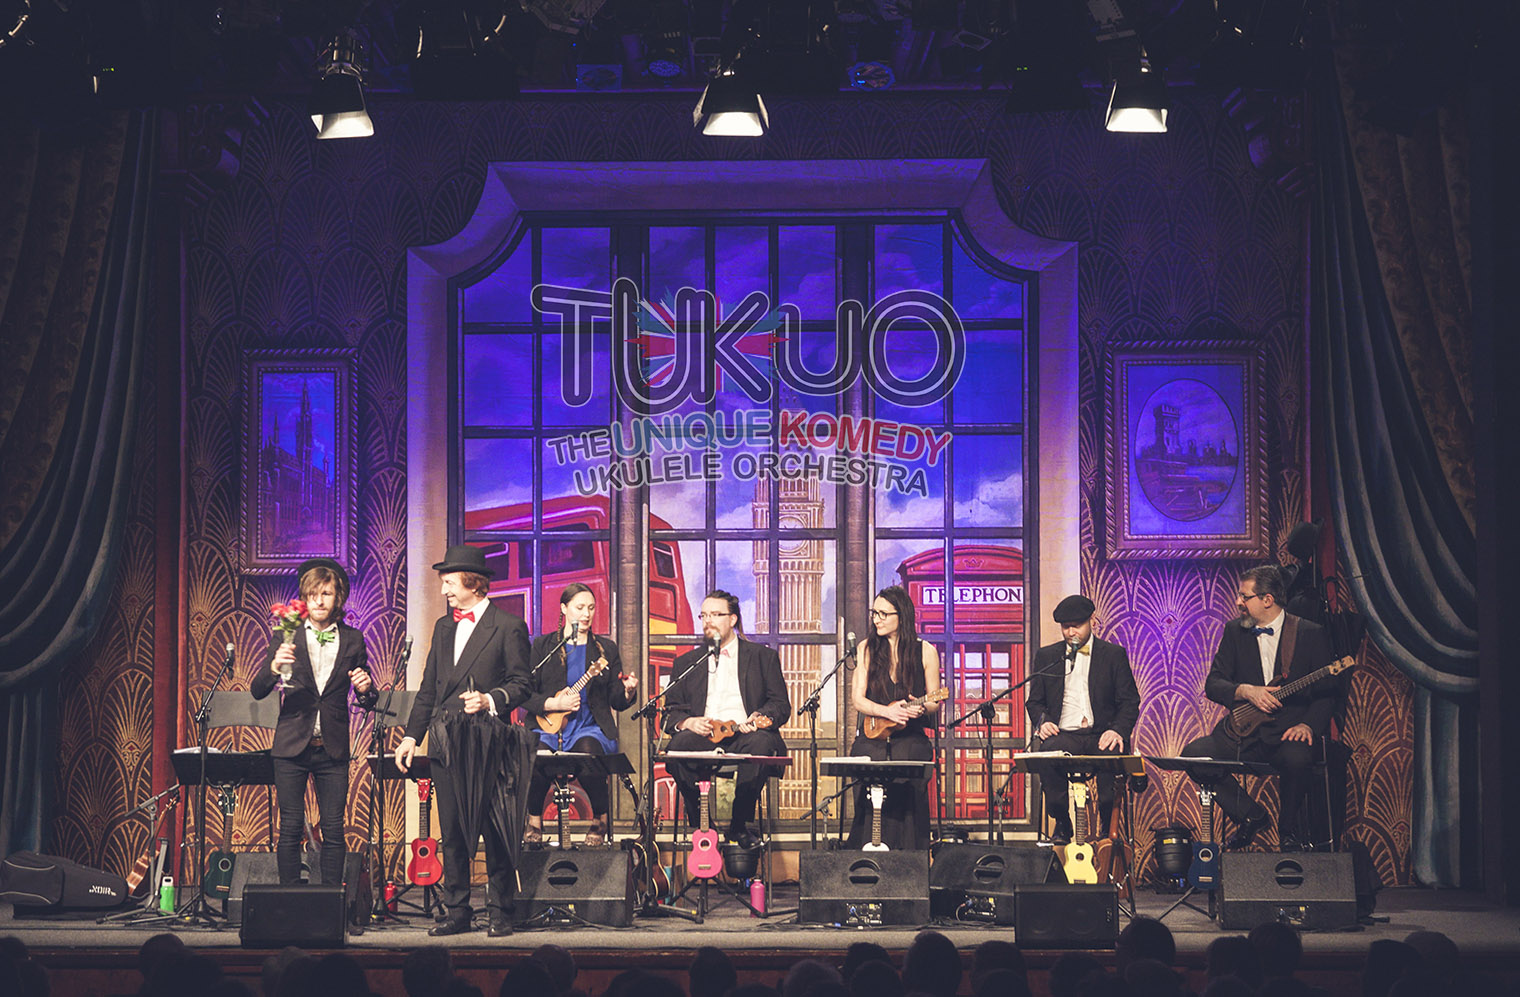 TUKUO_concert_Berlin_photo_VFedirko_9334 copy.jpg